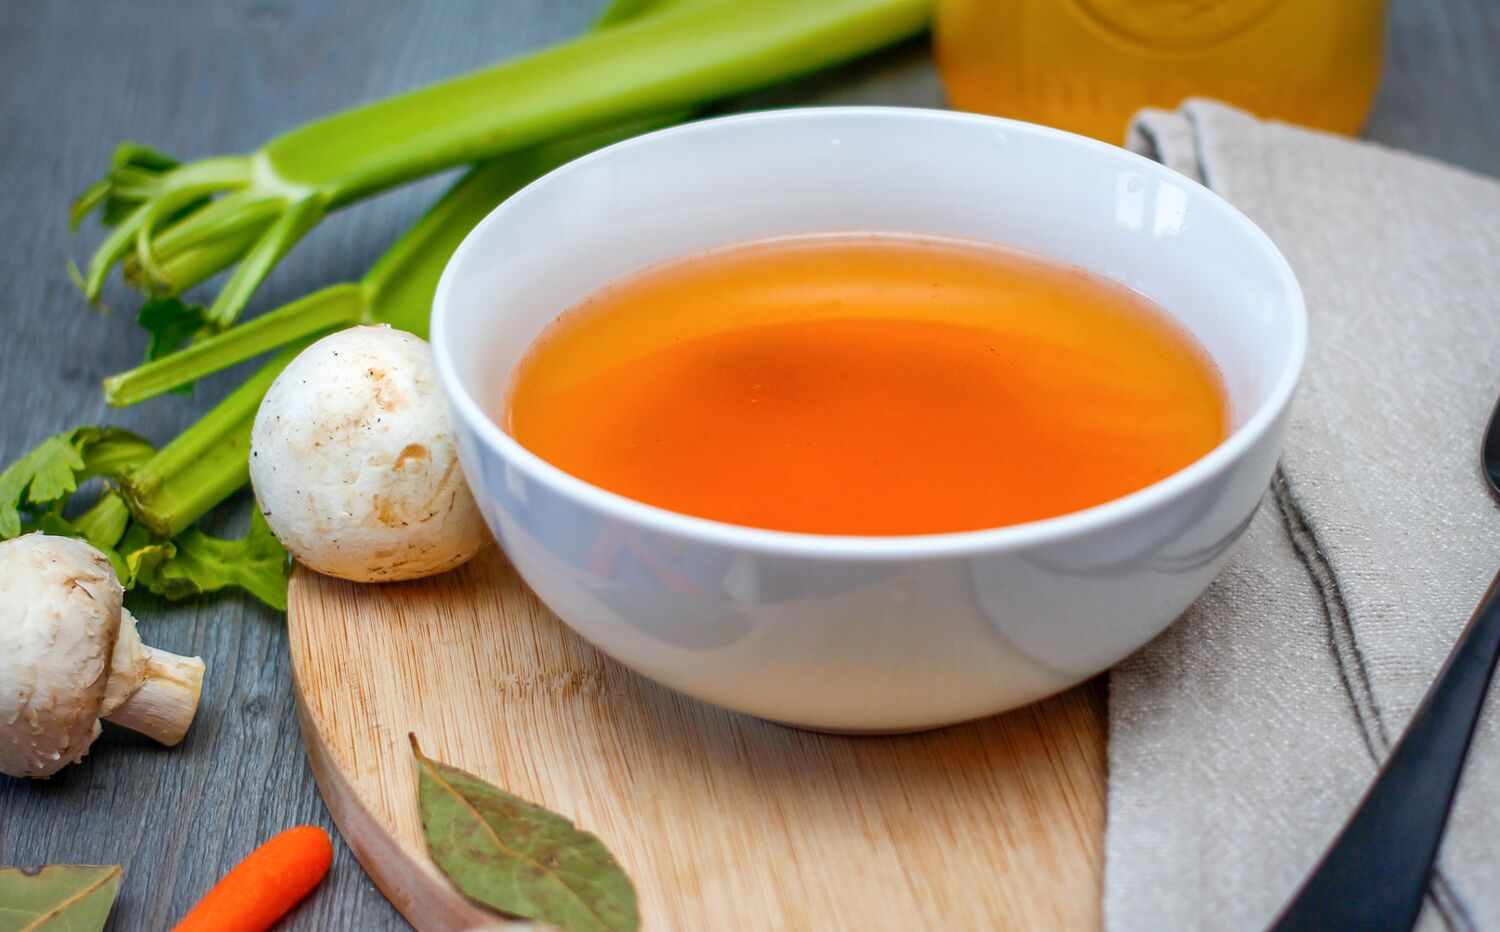 Basic Vegetable Broth Recipe